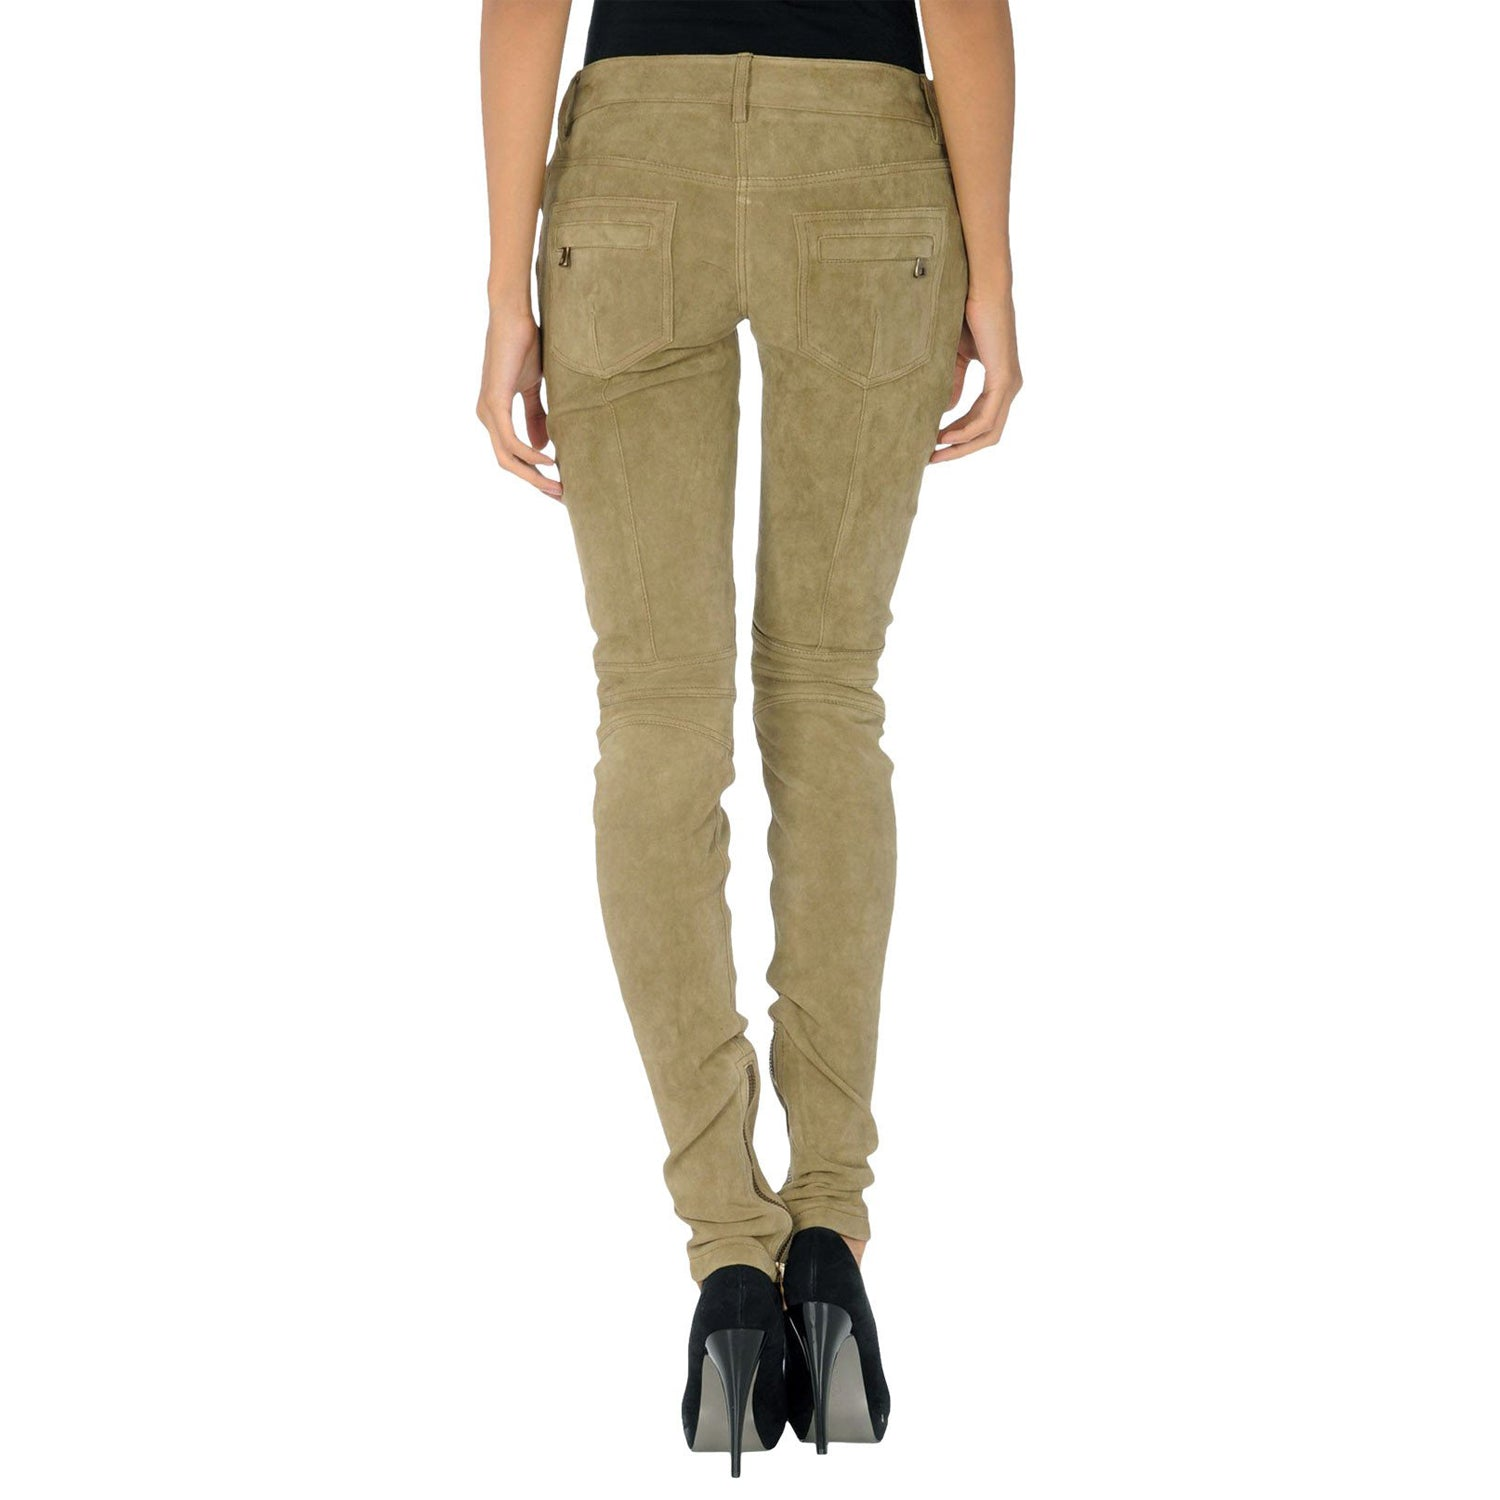 Beige Suede leather pants - Lusso Leather - 2